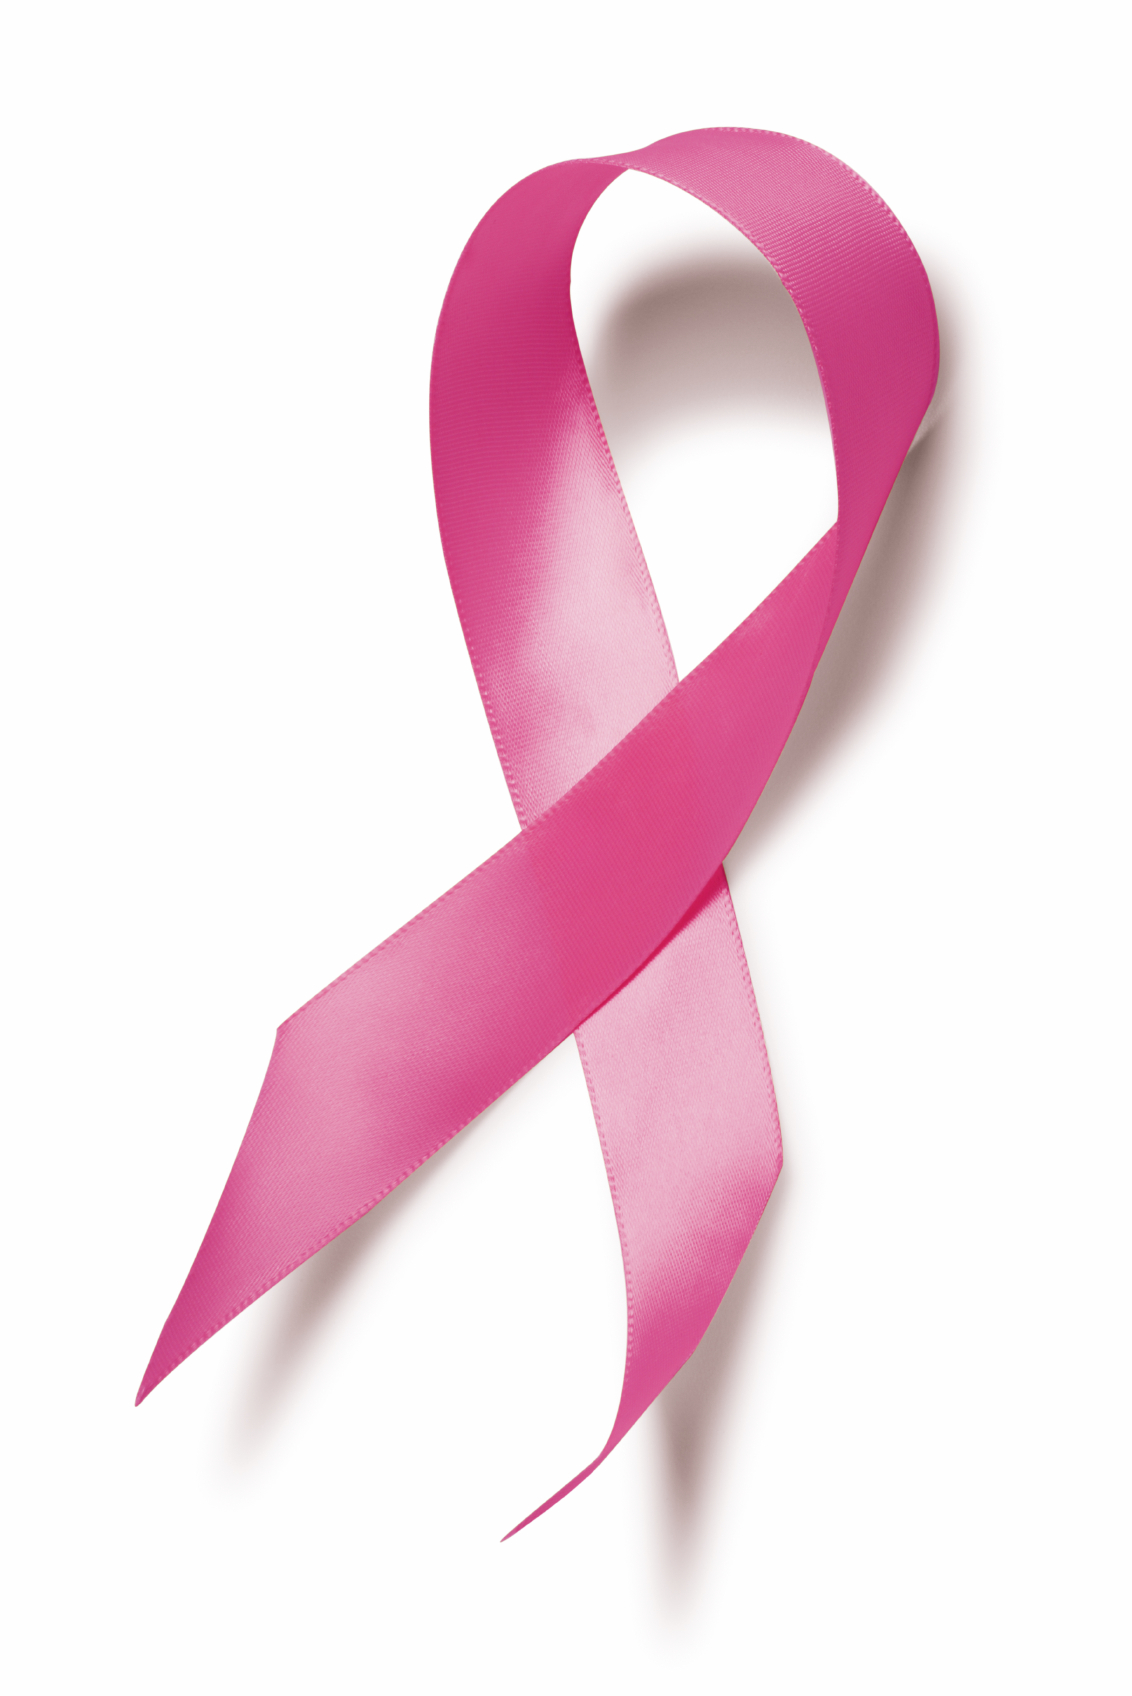 Pictures of breast cancer pink ribbon have won